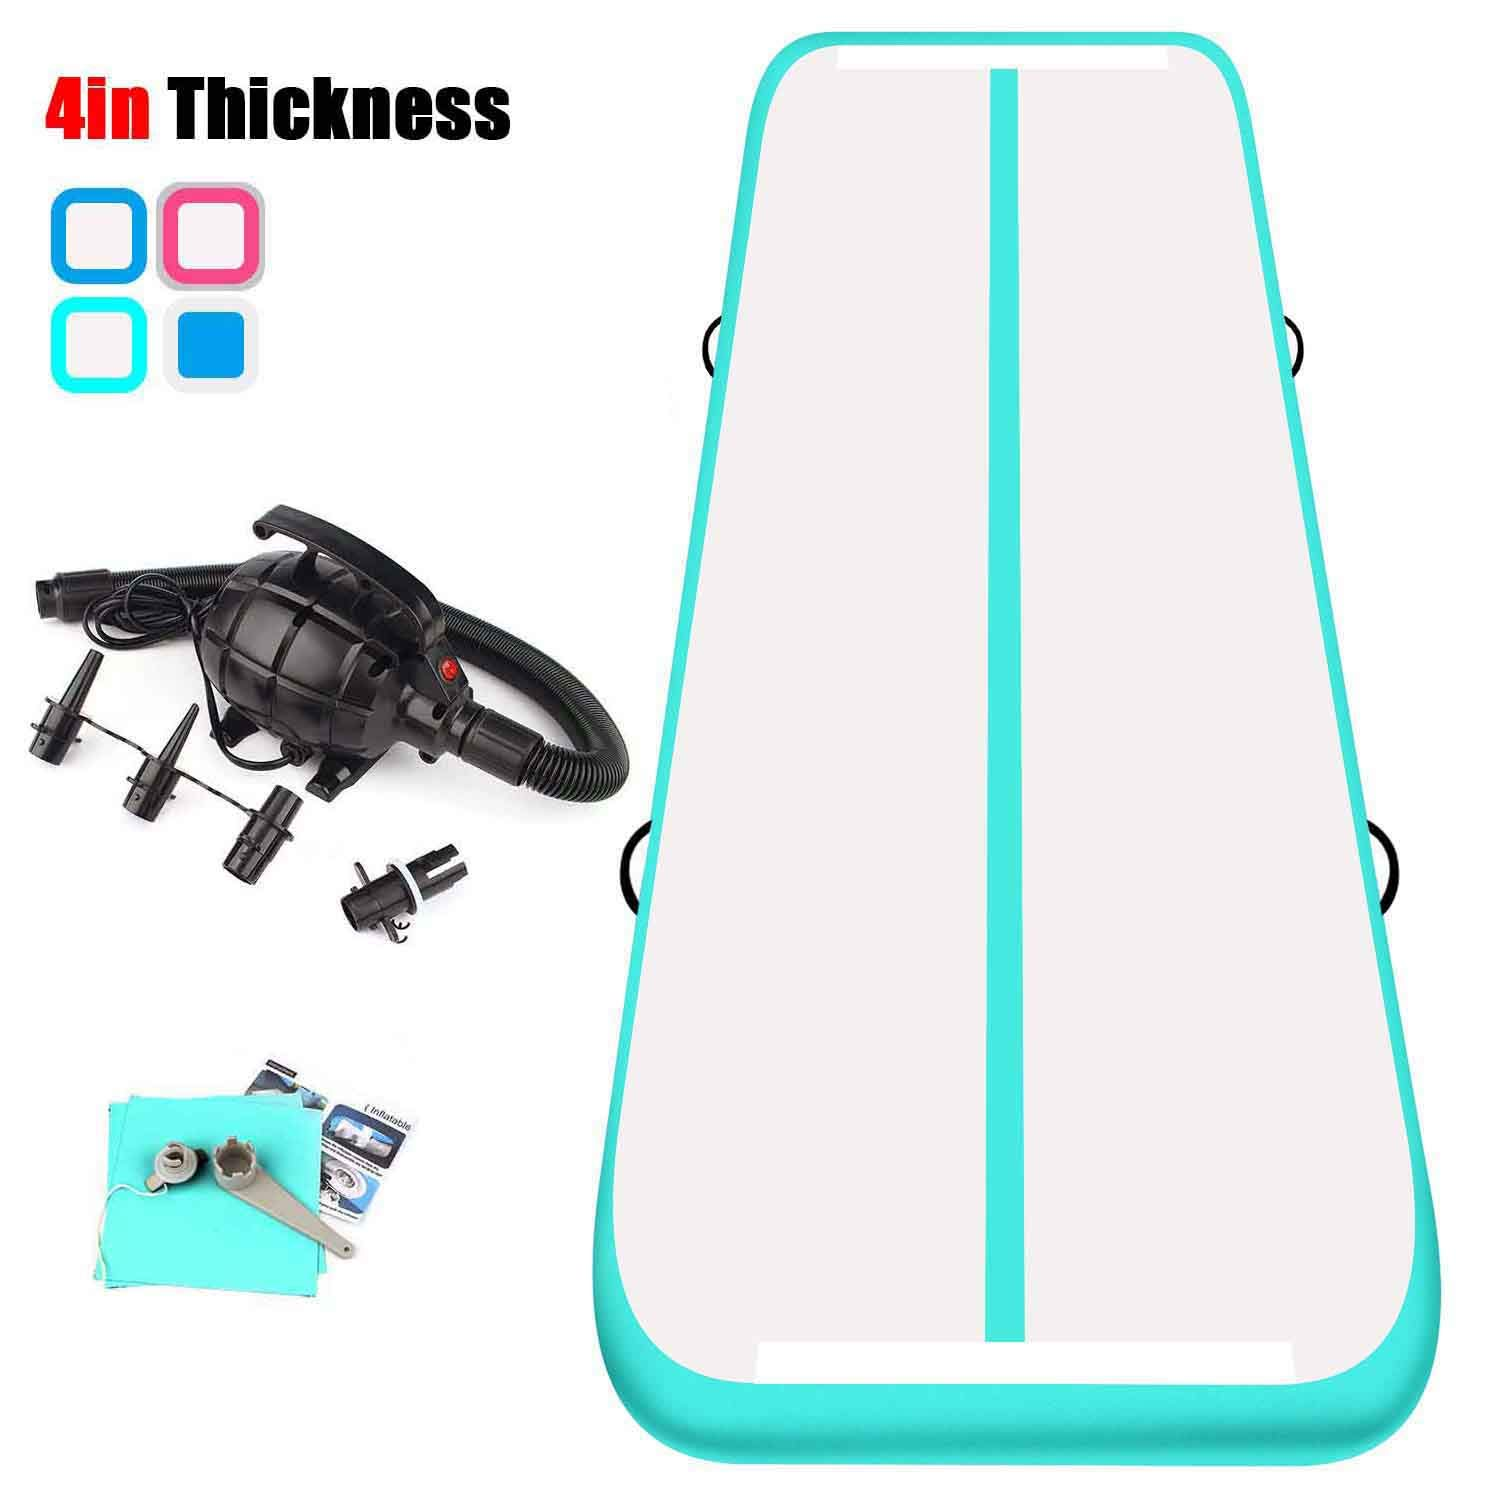 KIKILIVE 23ft Air TrackTumbling Mat,4 inch Inflatable Gymnastics Airtrack Mat, Air Floor Mat with Electric Air Pump for Training/Cheerleading